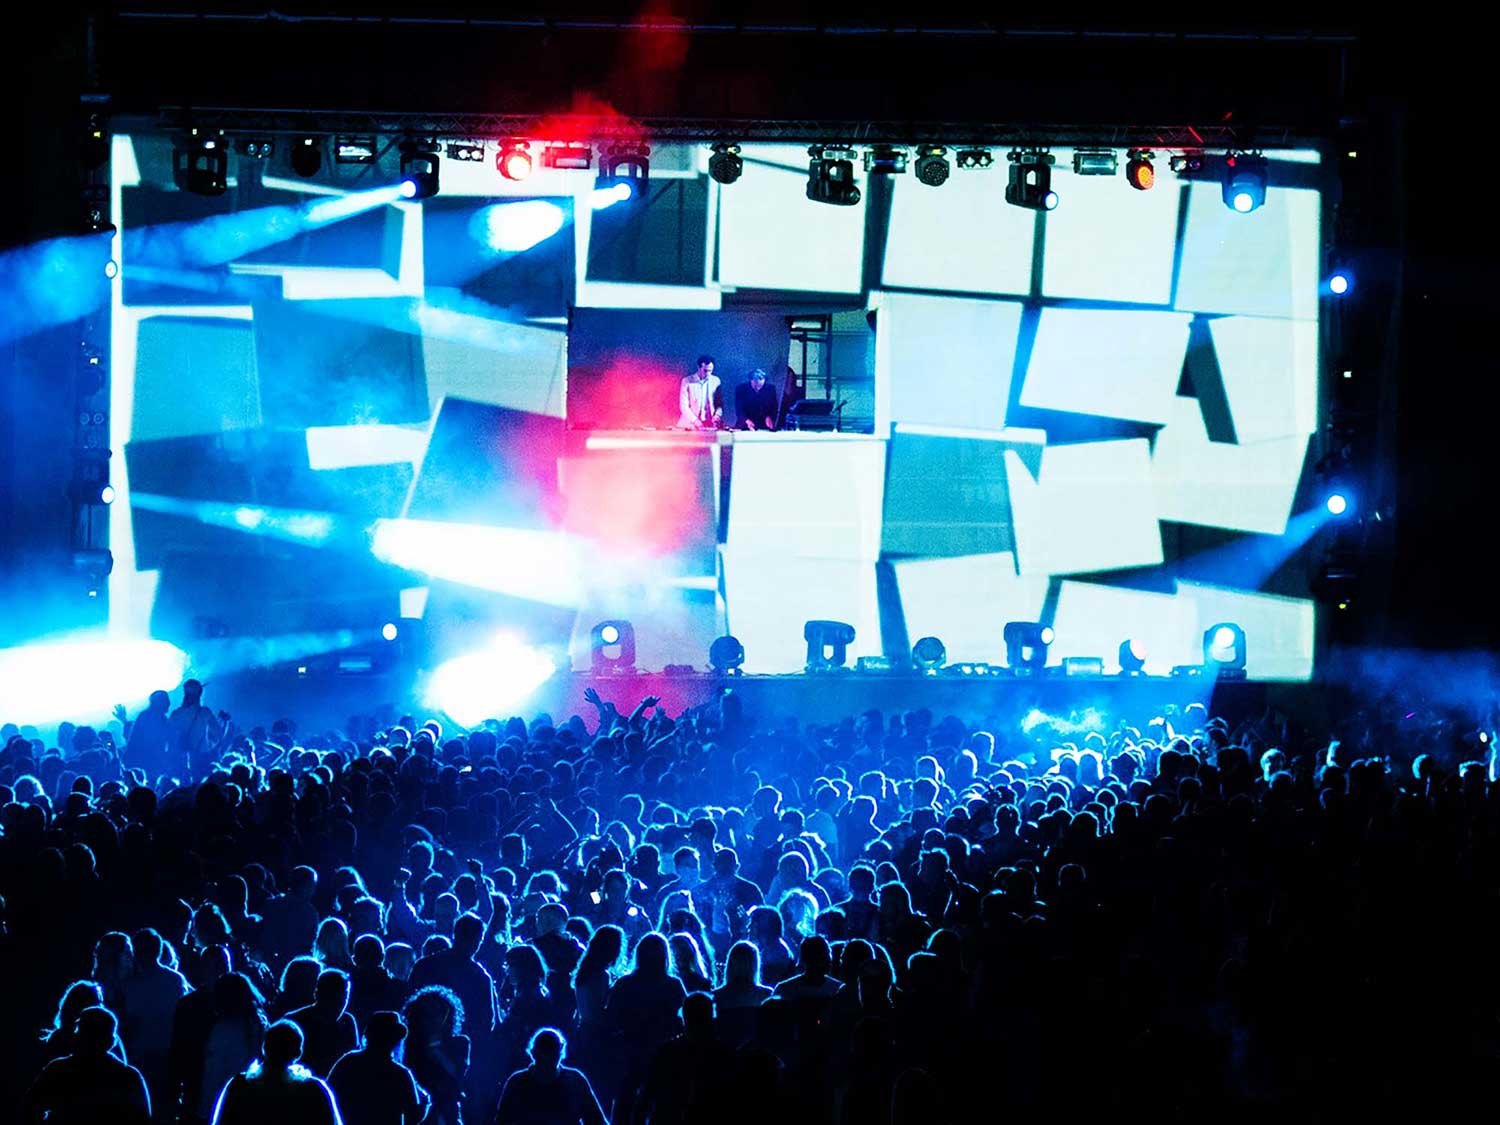 Groove music festival show projections, VJing set live